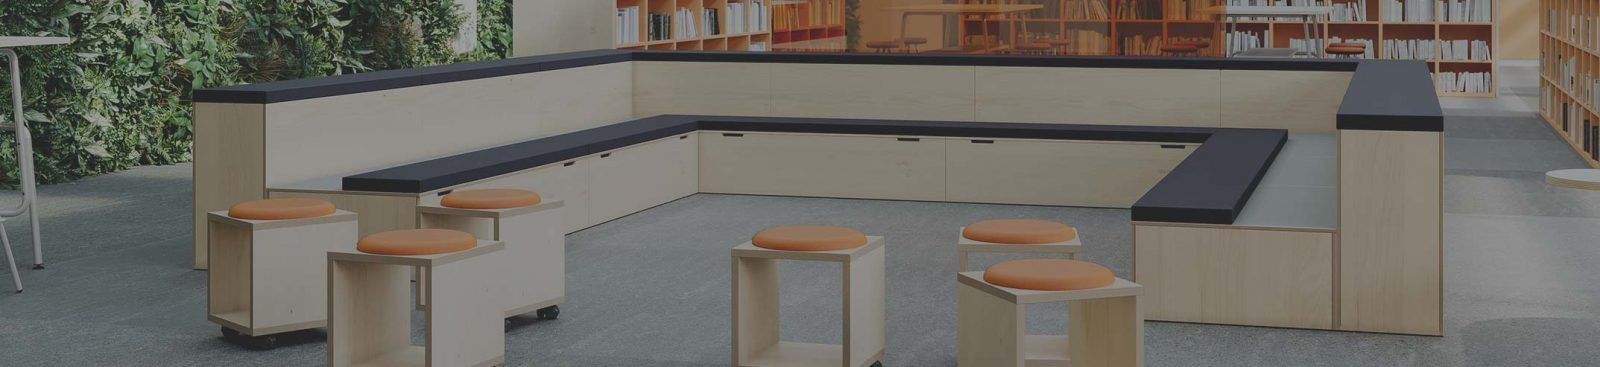 Behind the bleachers: exploring tiered seating in the office image